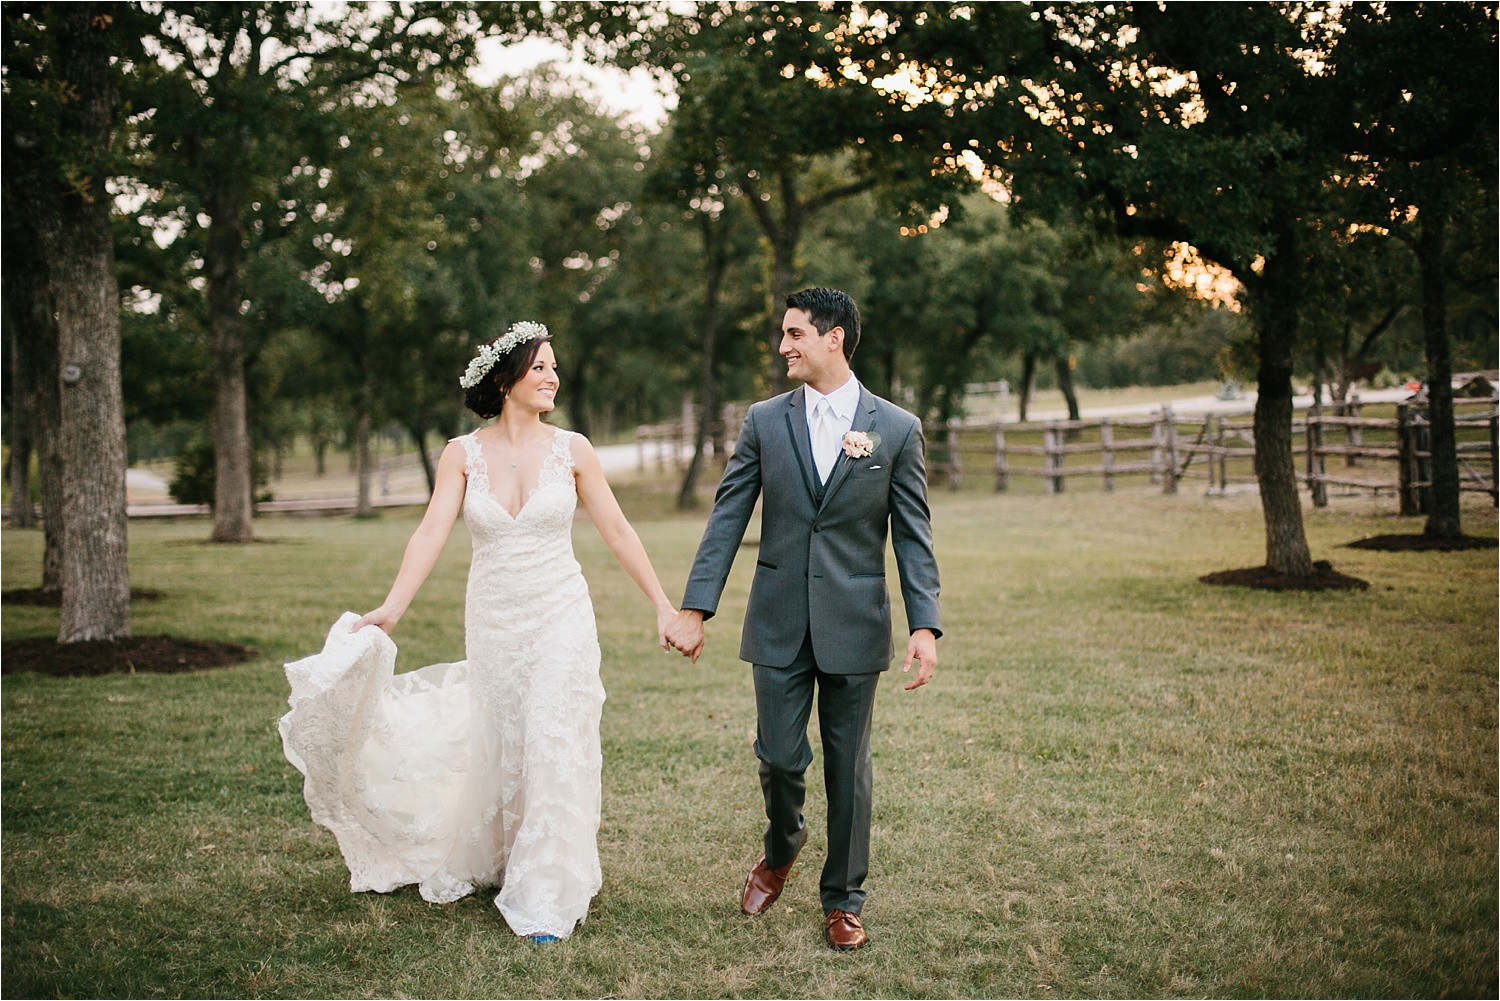 Katelyn + Austin || an elegant wedding at Oak Knoll Ranch